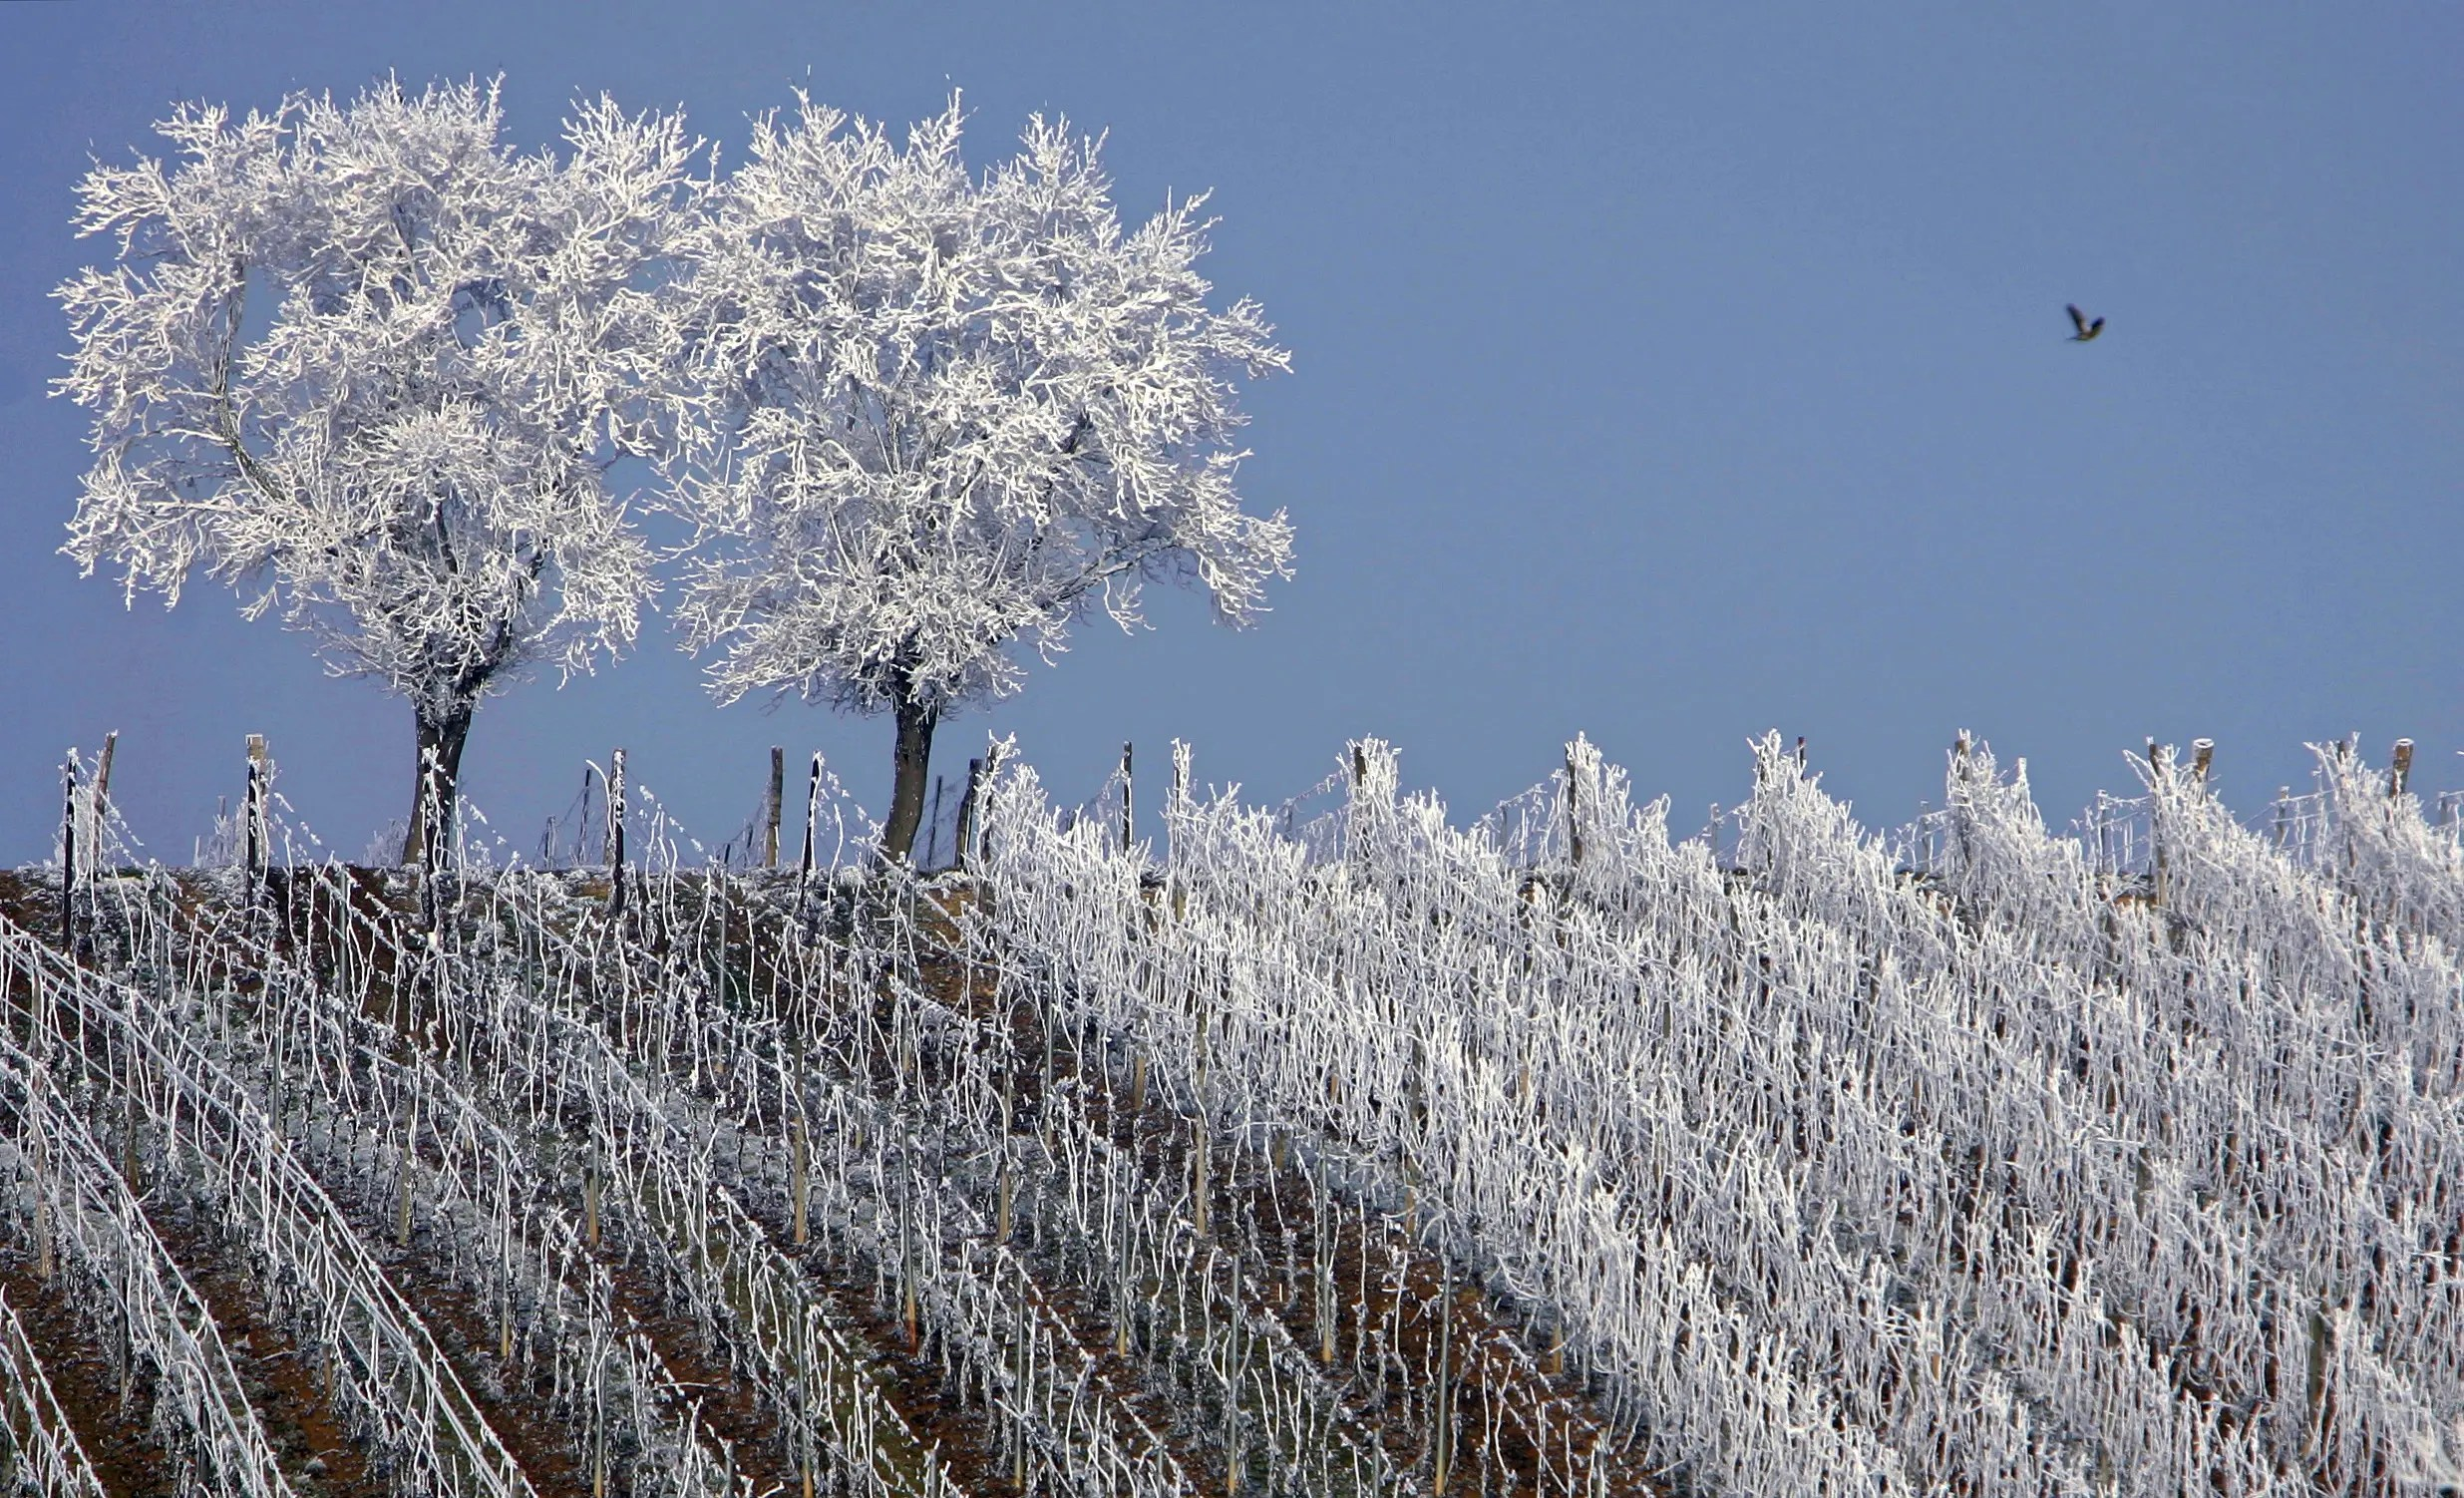 Frosted trees are seen in the middle of vineyards in the Alsace region countryside near Strasbourg, France.